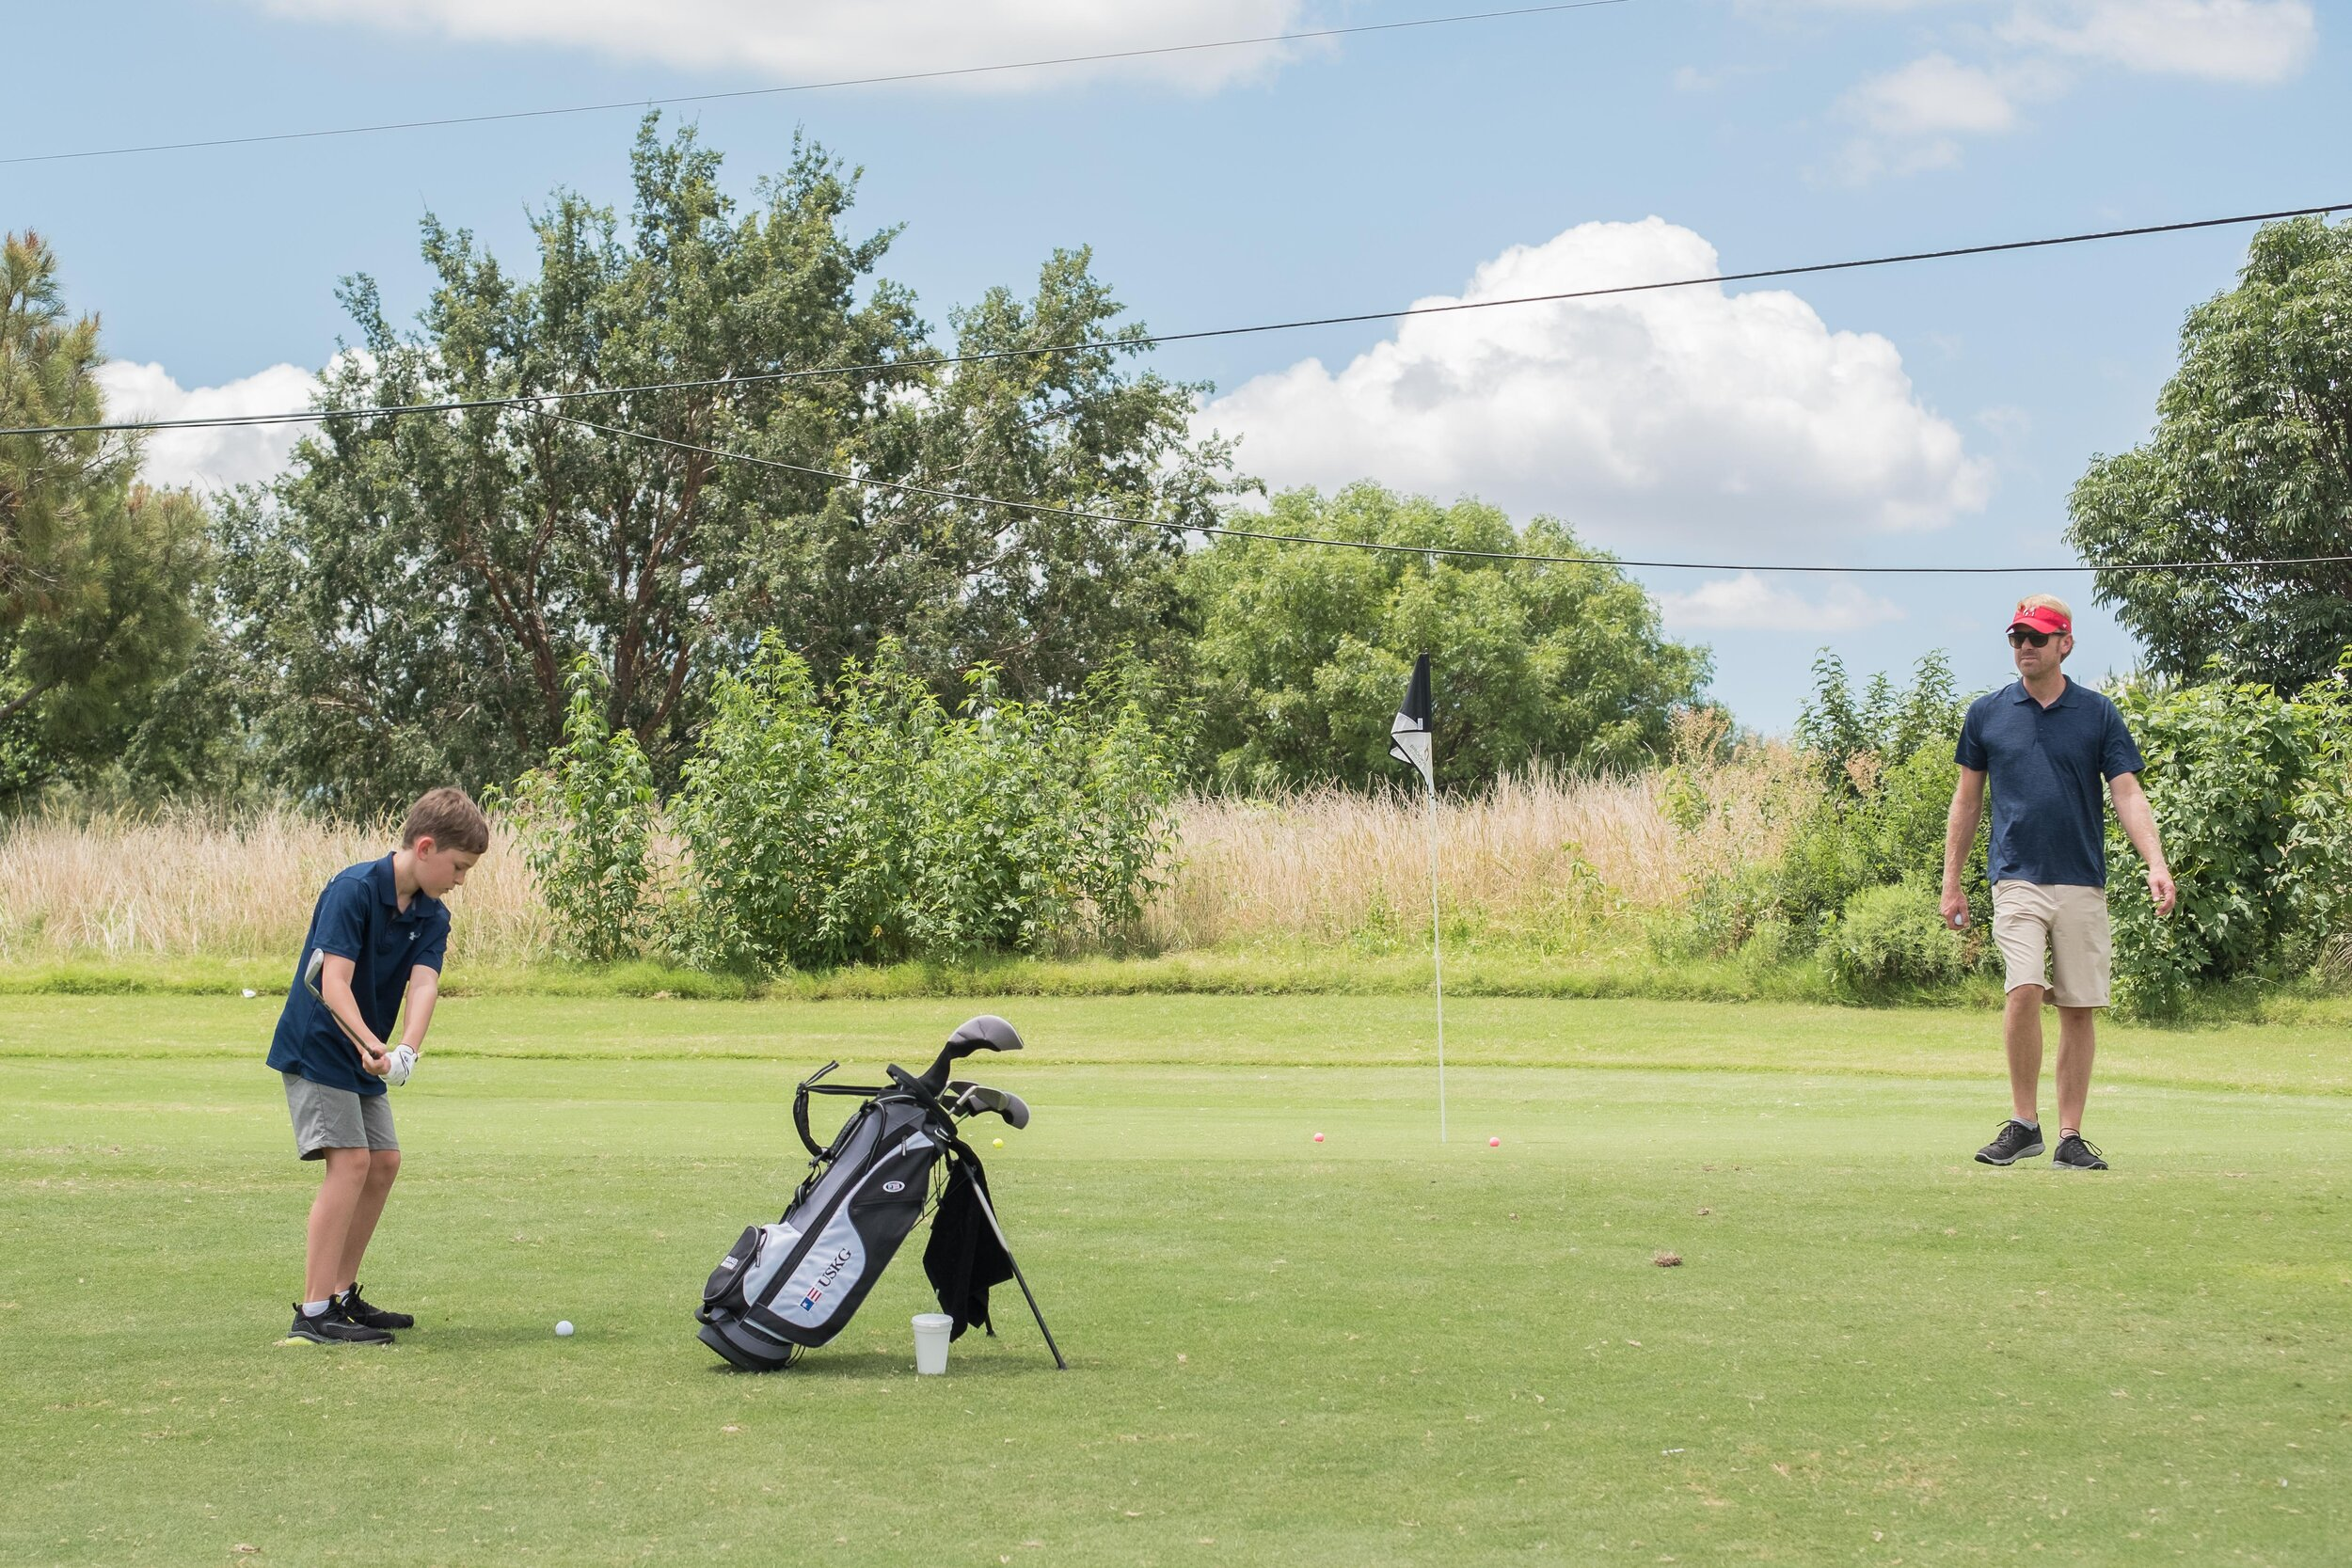 Michael played in his first Drive, Chip, Putt competition and he's just signed up for a fall Jr. PGA league. He's officially caught the golf bug.